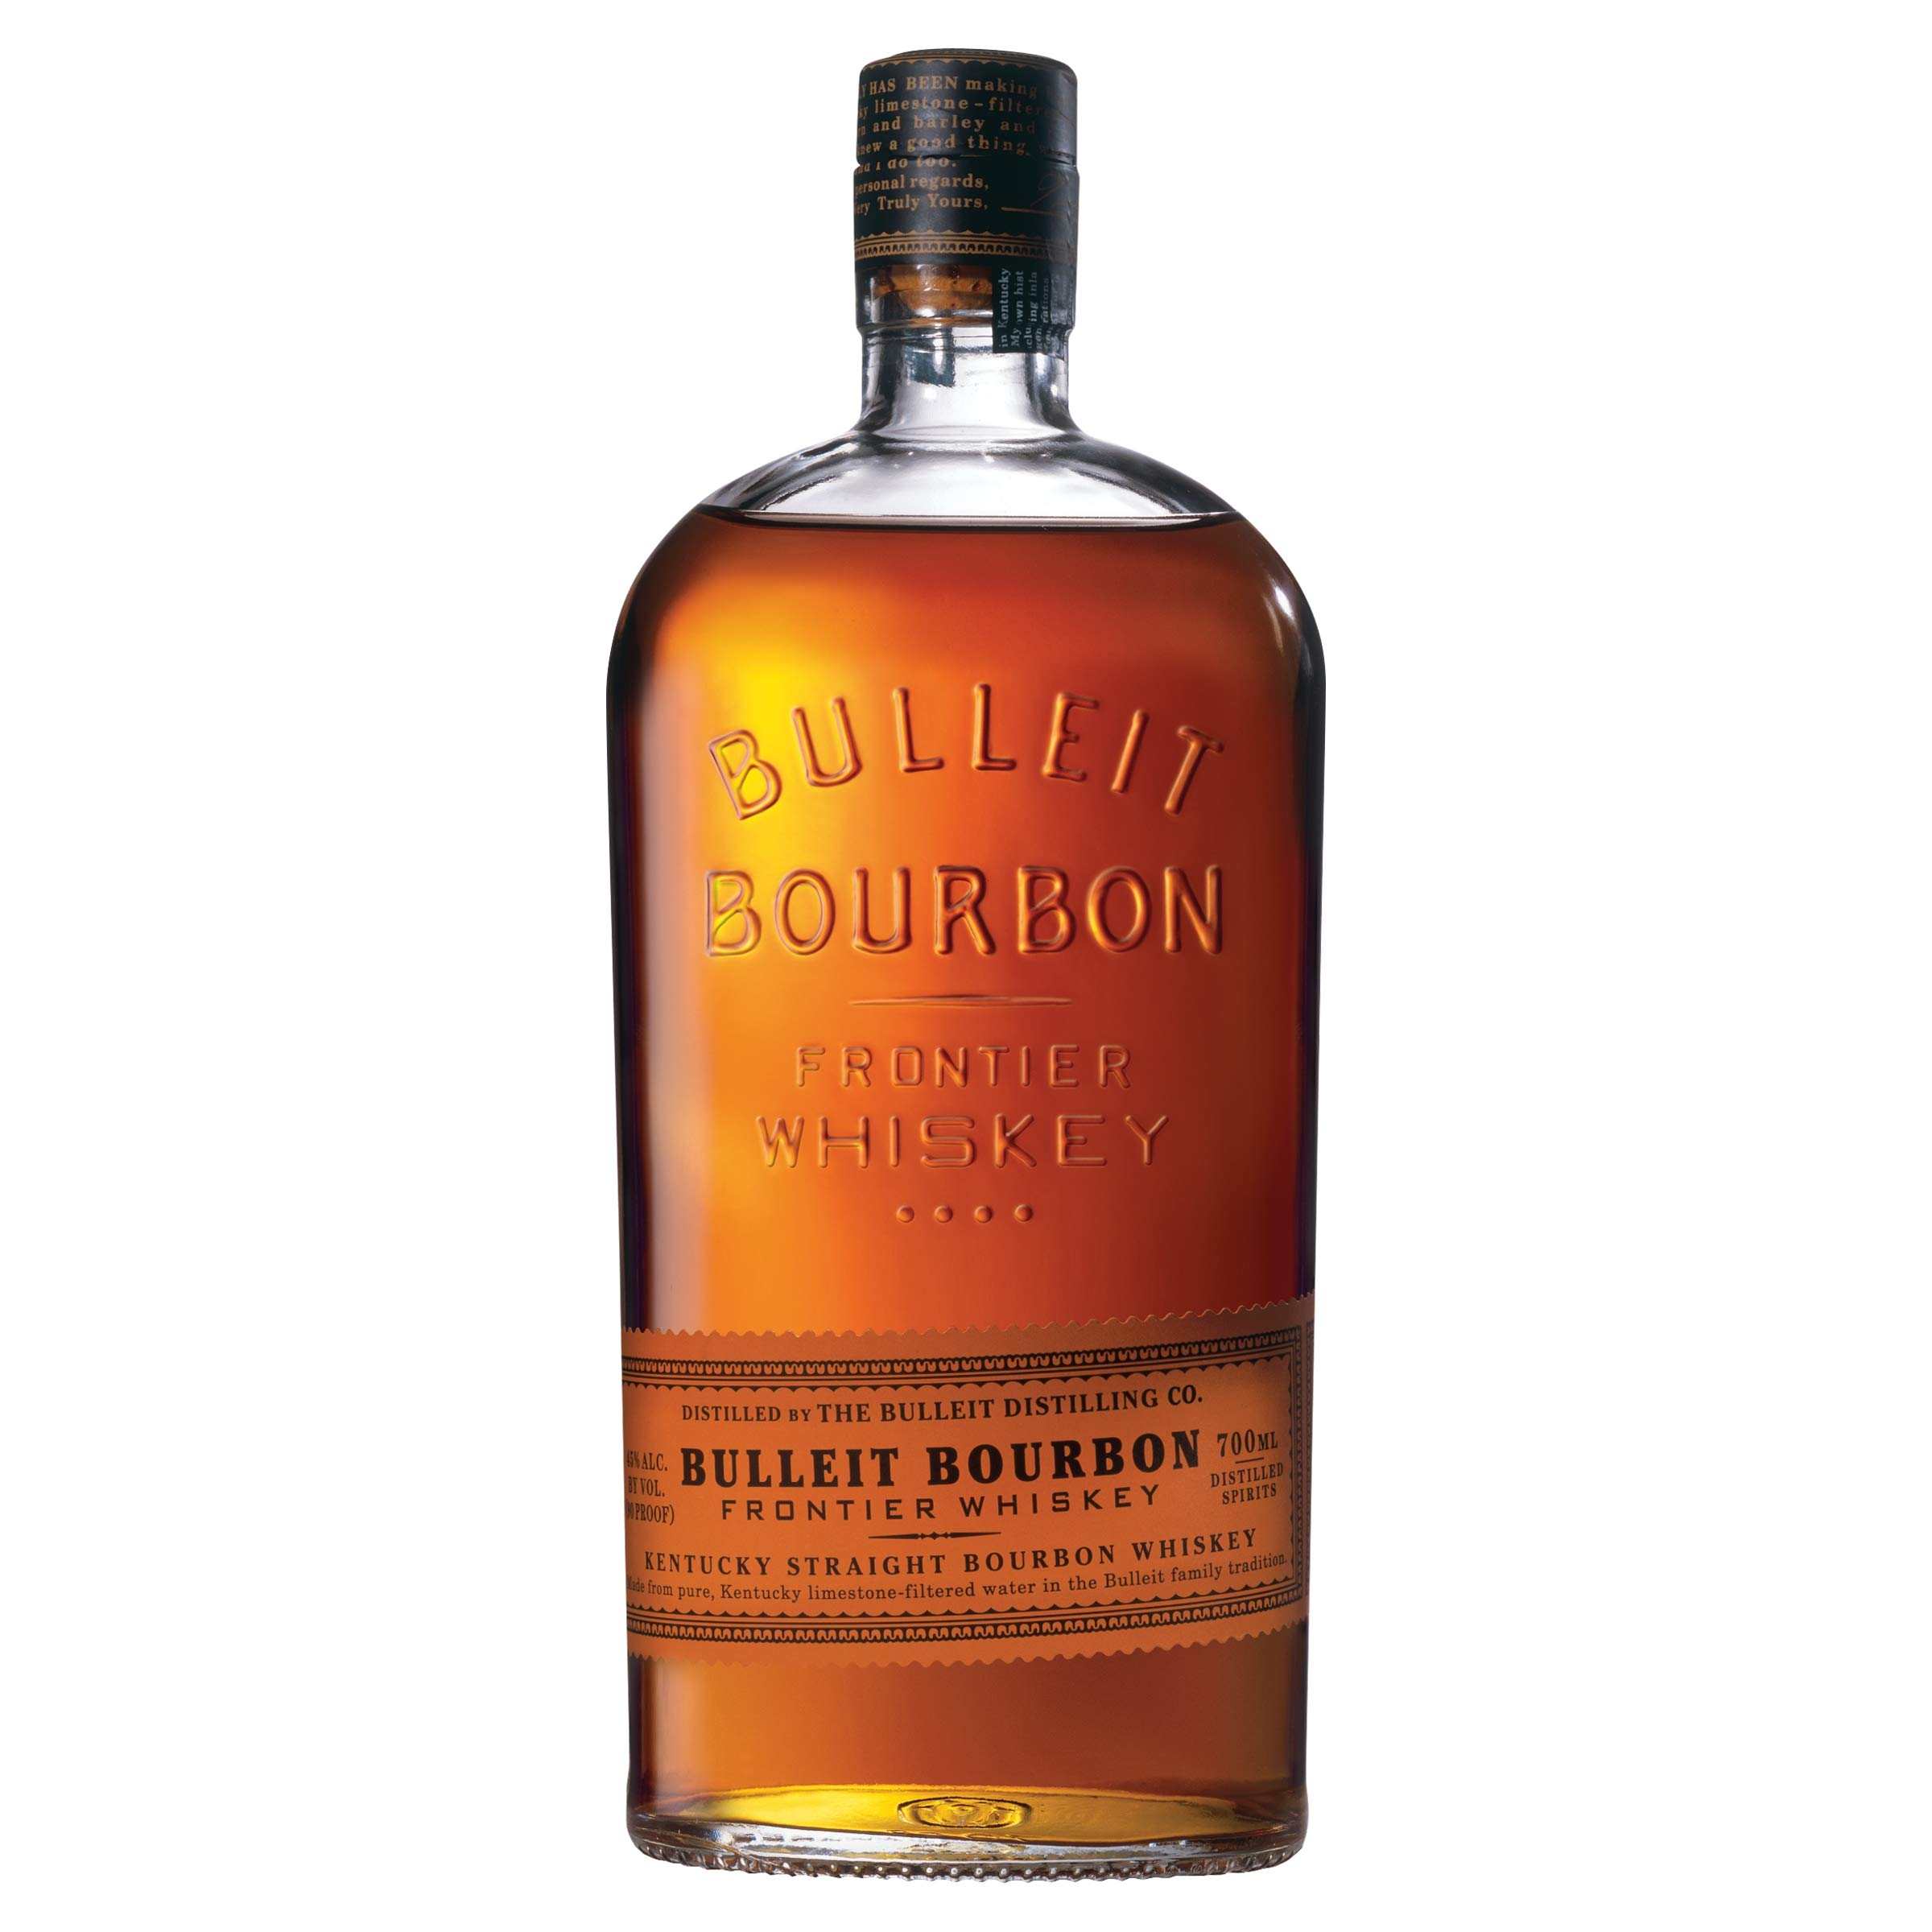 Bulleit Bourbon Hessian Sack Whisky